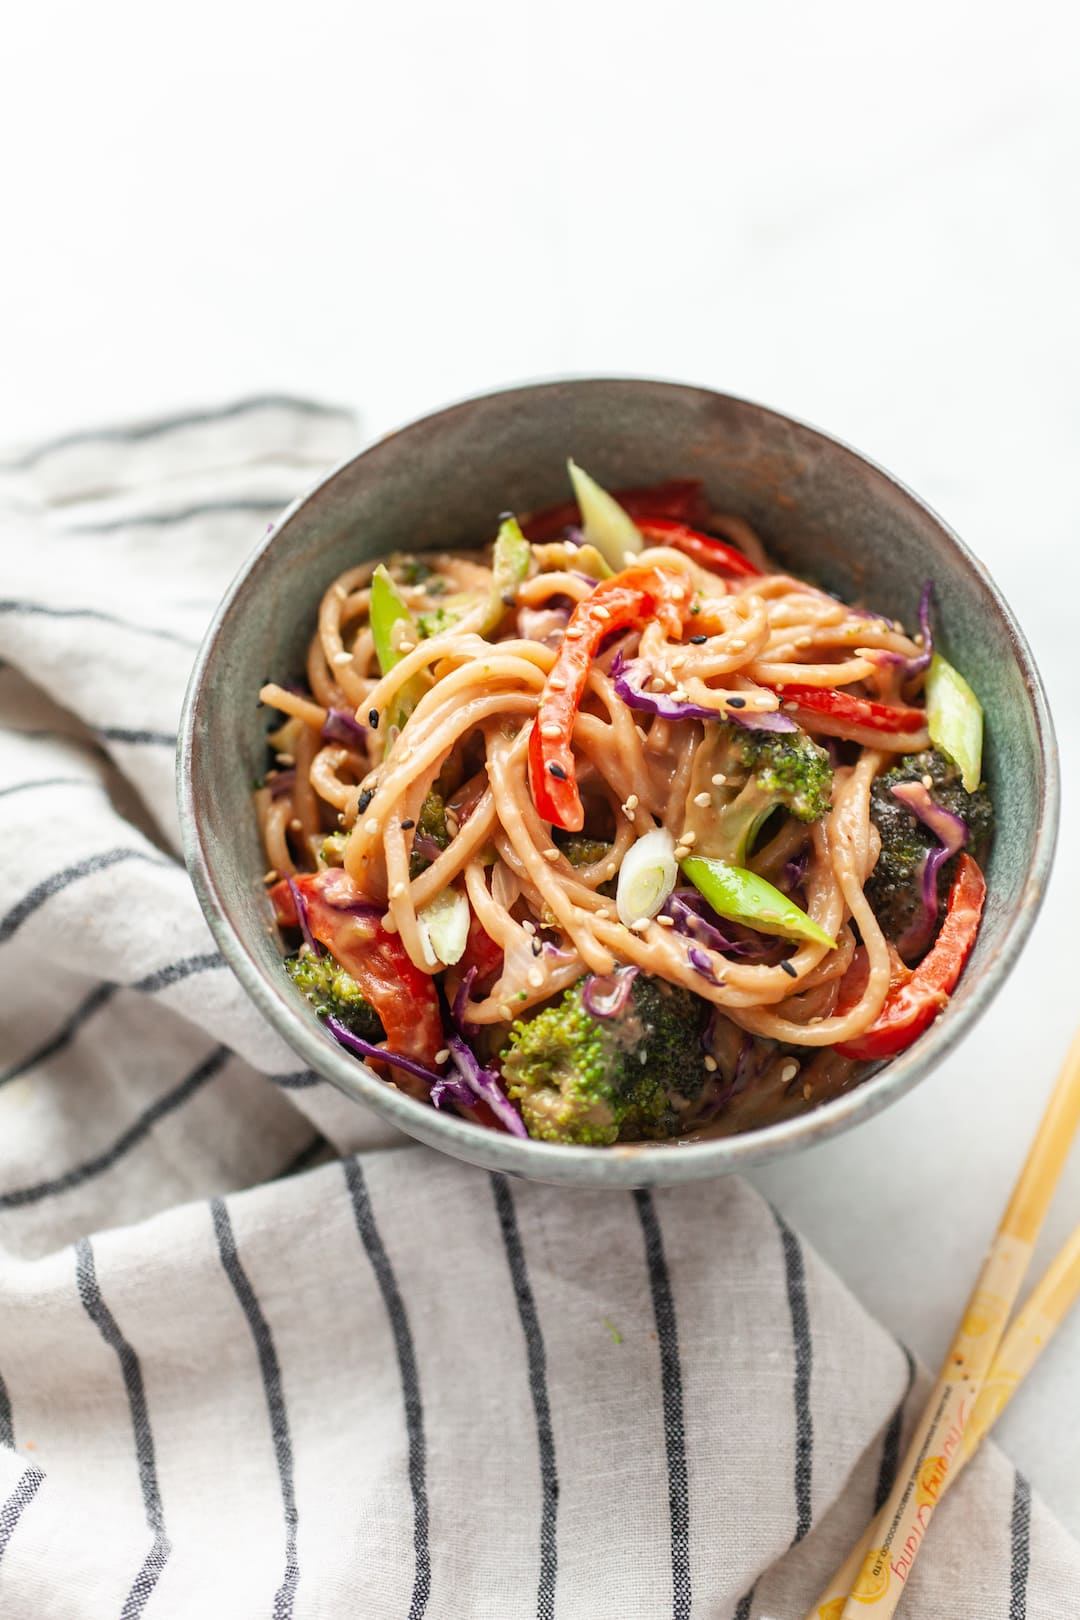 Bowl of peanut sauce noodles with vegetables and sesame seeds